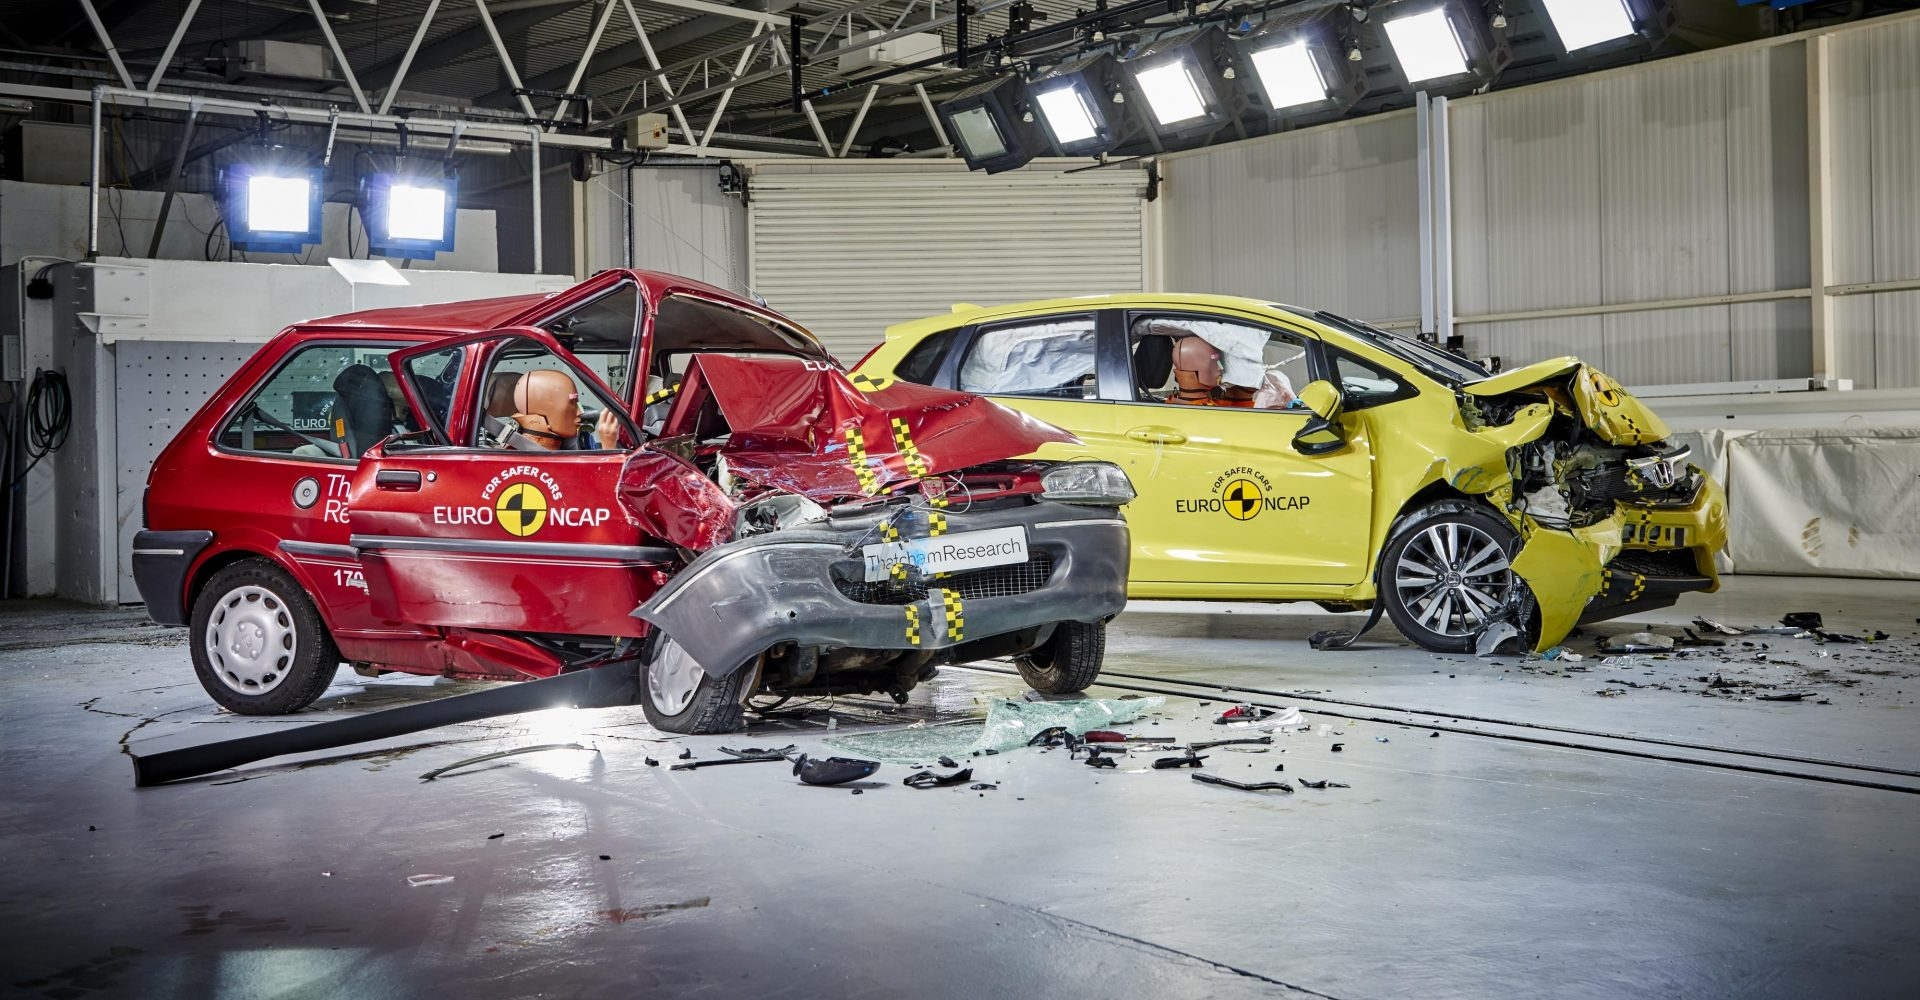 Euro NCAP announces 'biggest change to testing protocols in a decade'